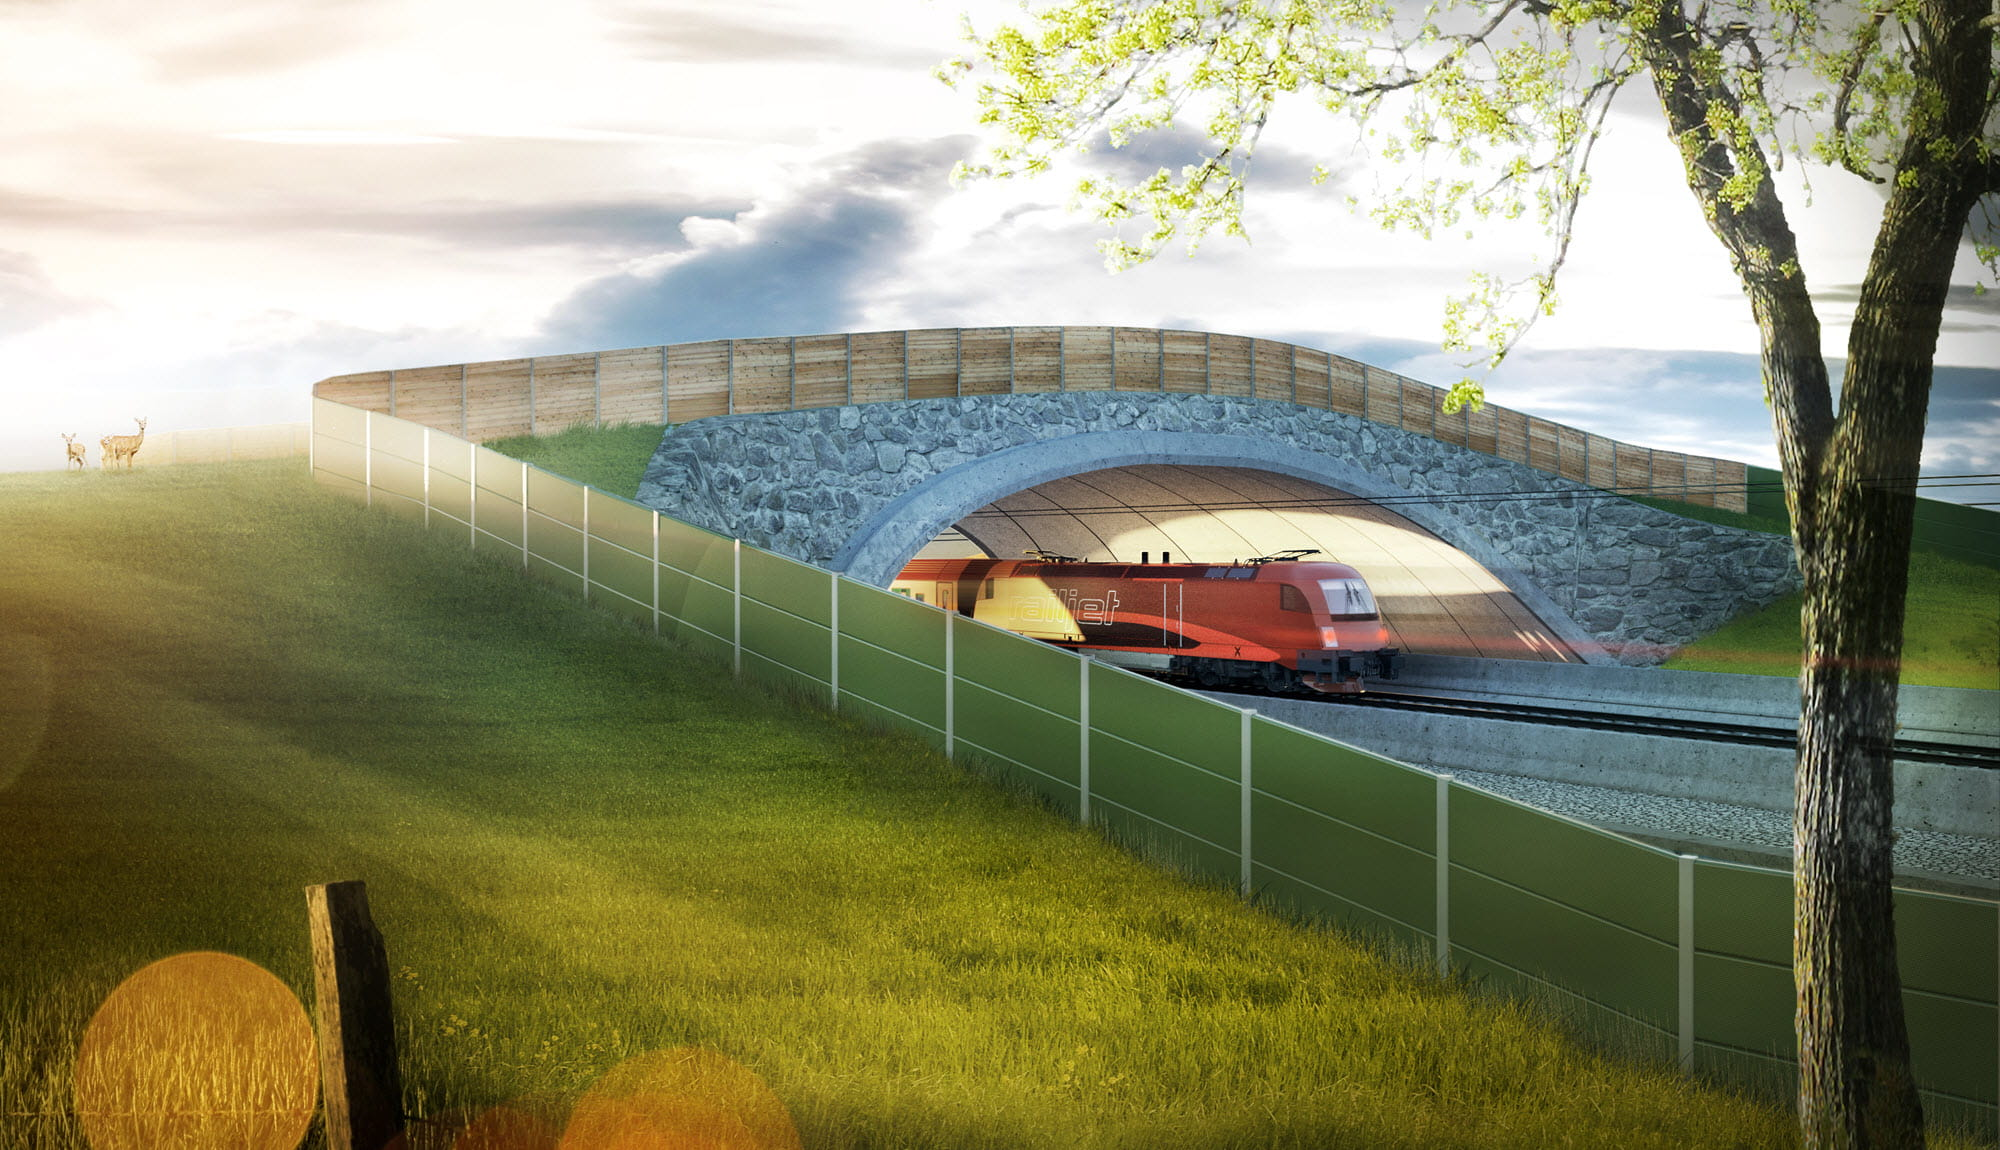 Visualization of wildlife crossing AM2 (© Michael Sohm / TU Wien)